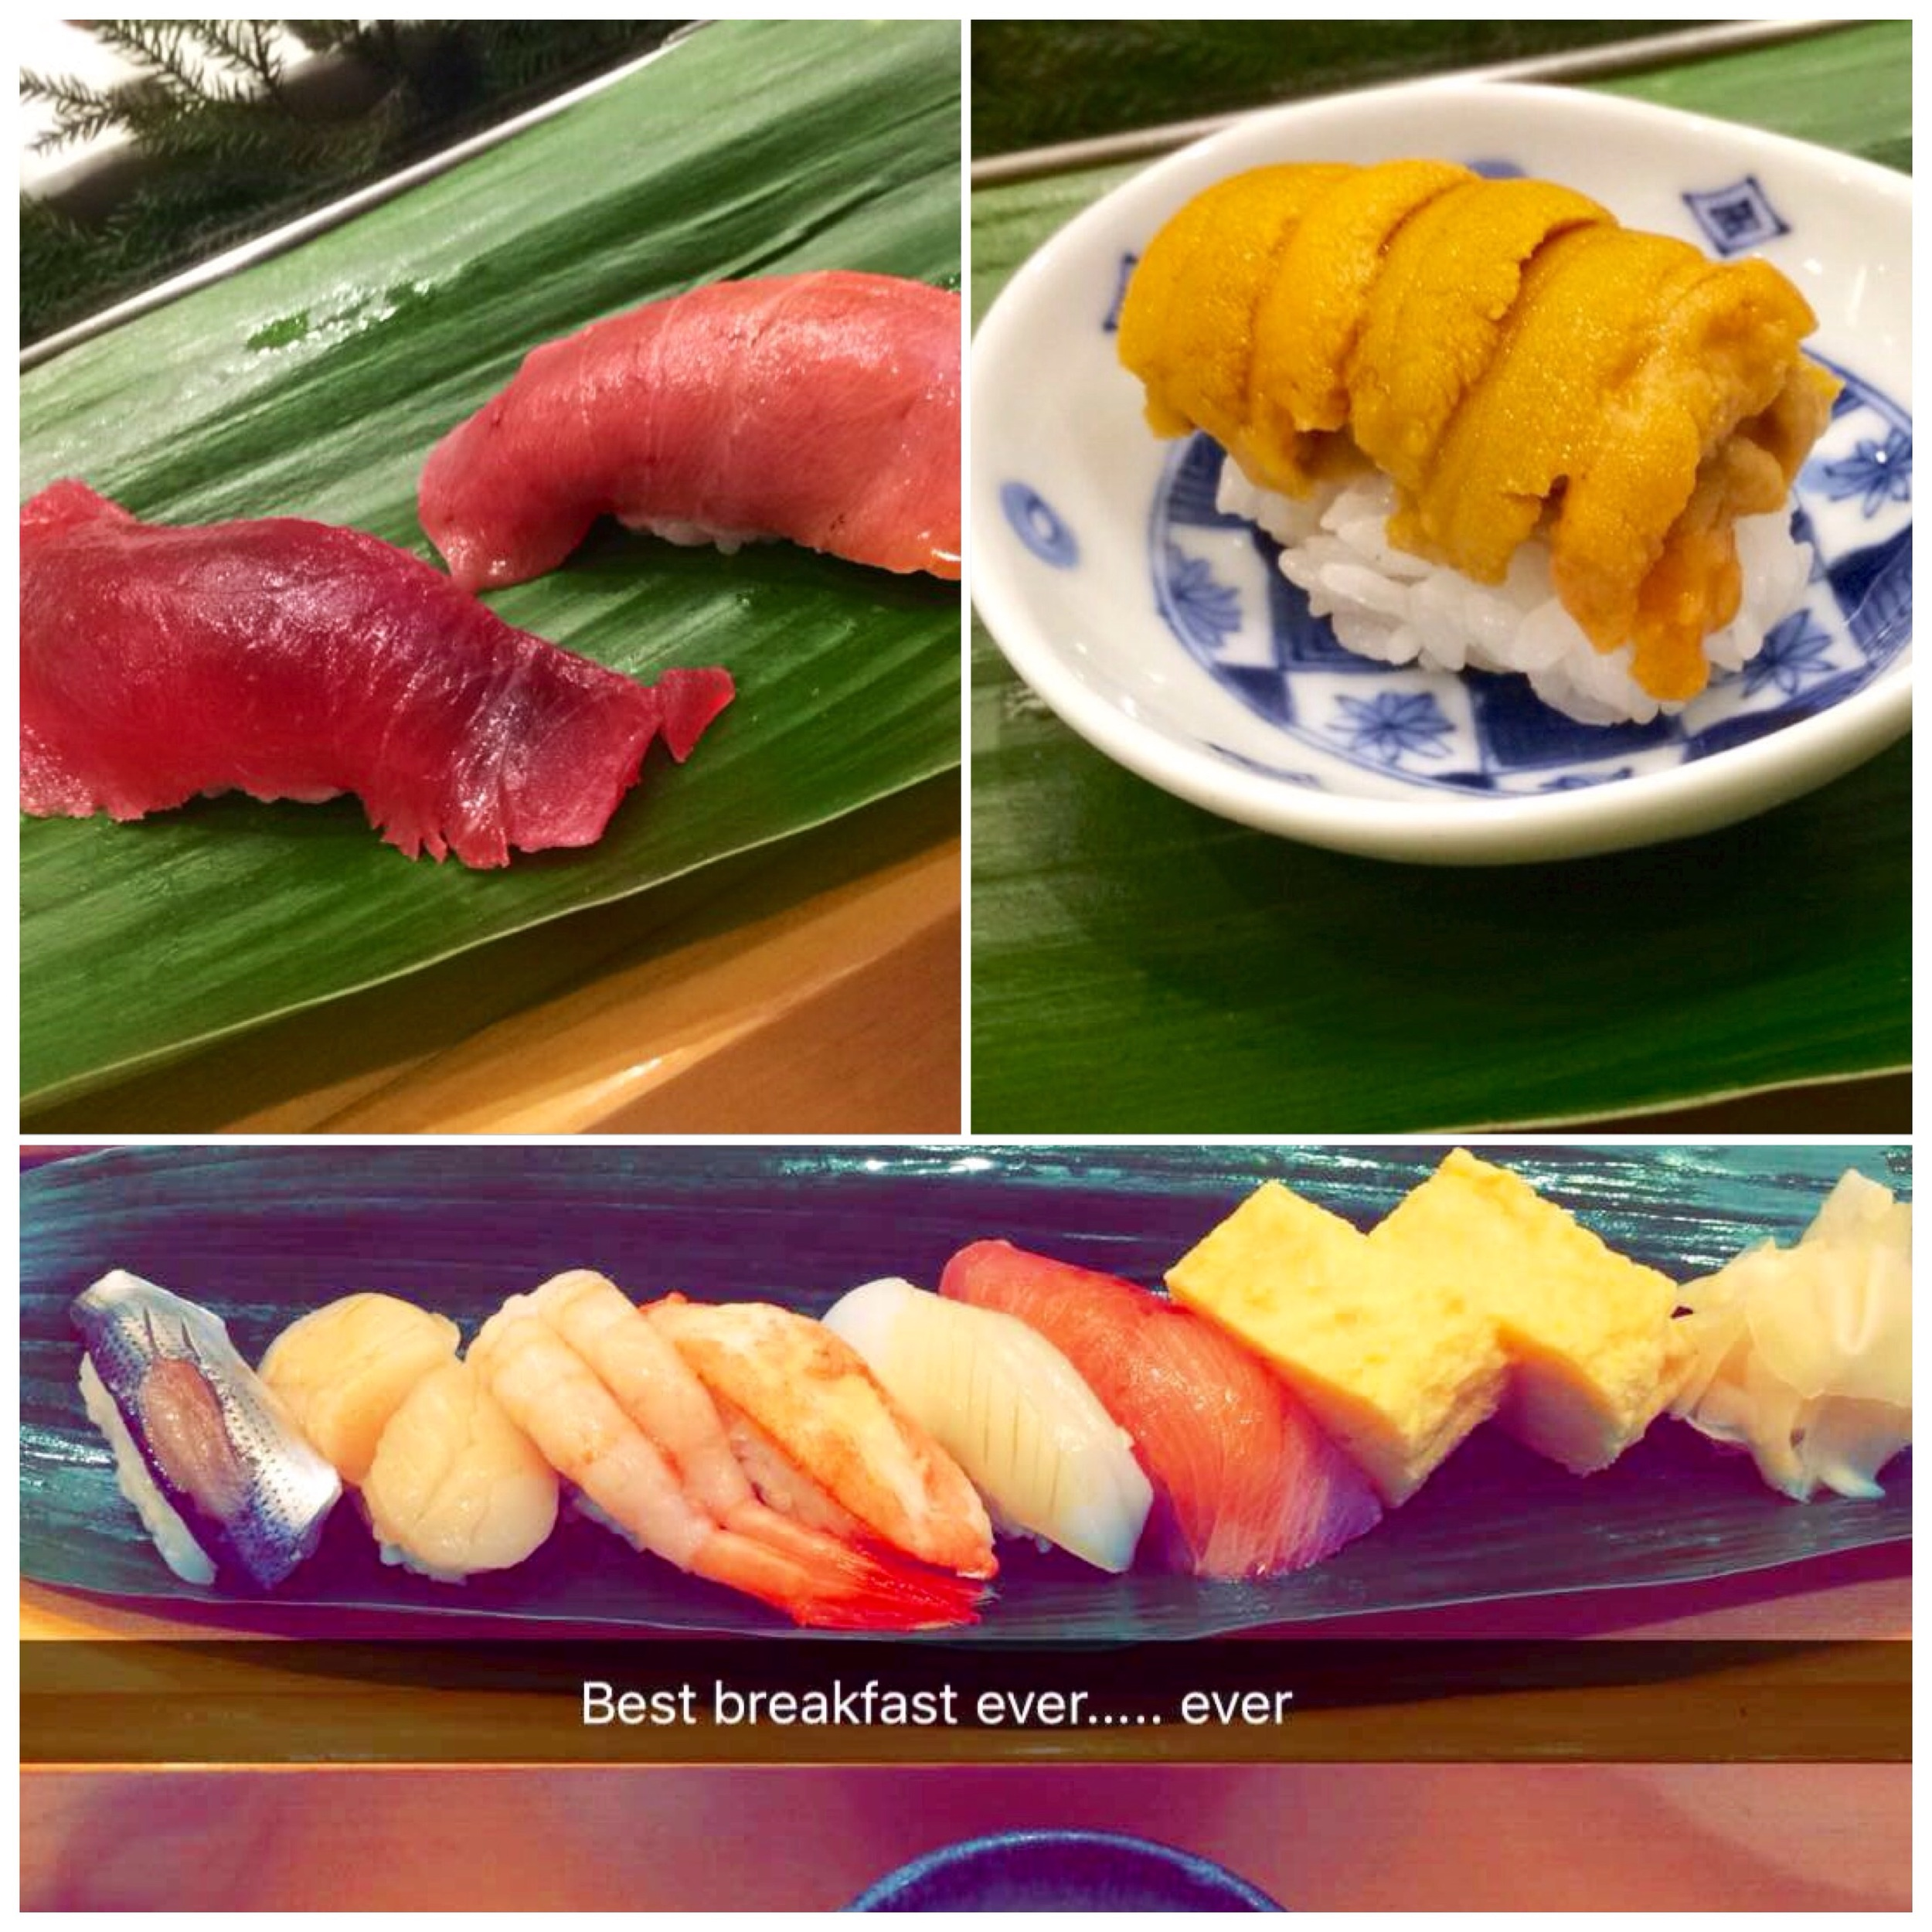 The best sushi that I will probably ever have came from Tsukiji in Tokyo, which is the largest fish market in the world. This photo includes lean tuna, medium-fatty tuna, sea cucumber, and sweetened egg, among other things.